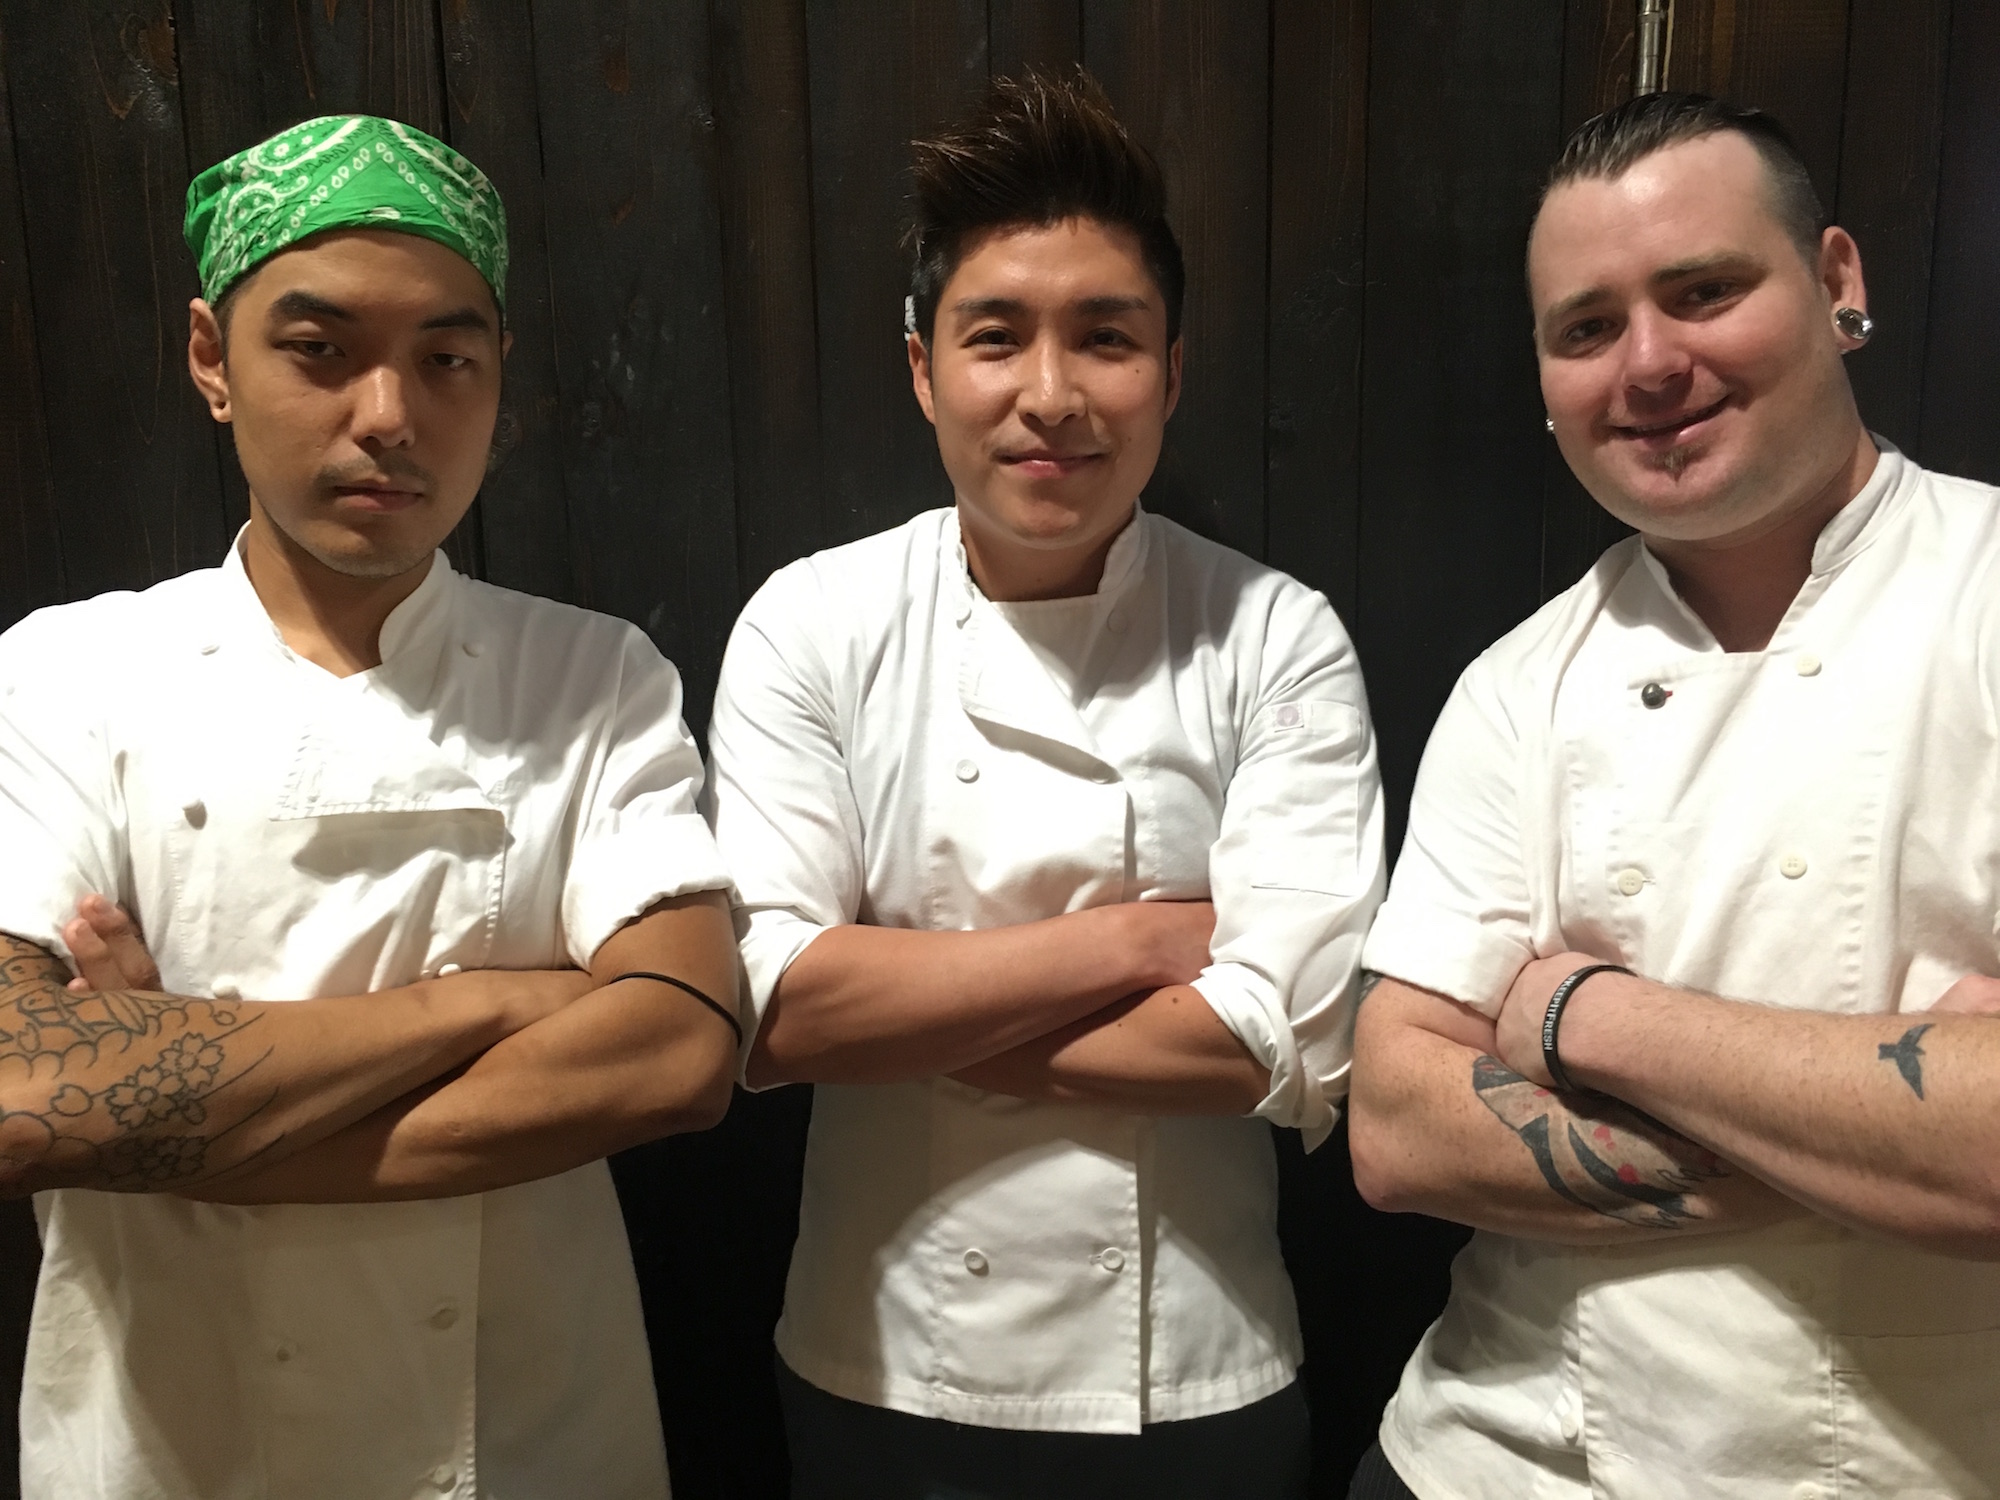 From left: Char sous chef Shaun Byun, consulting chef Jey Oh, and executive chef Ryan Catherall.